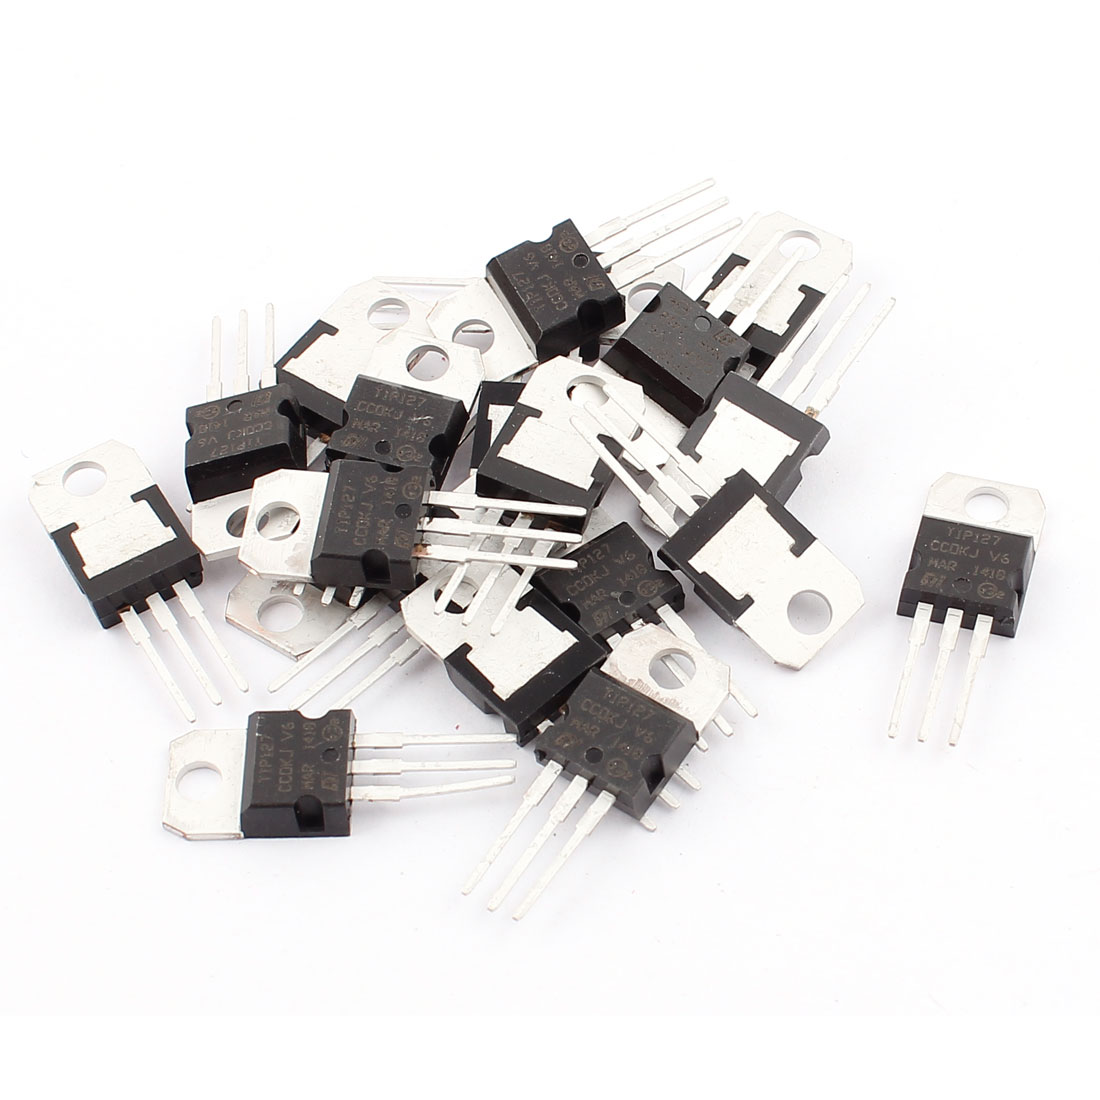 20 Pcs 100V 5A 3 Pin Terminals TIP127 PNP Power Transistor TO-220